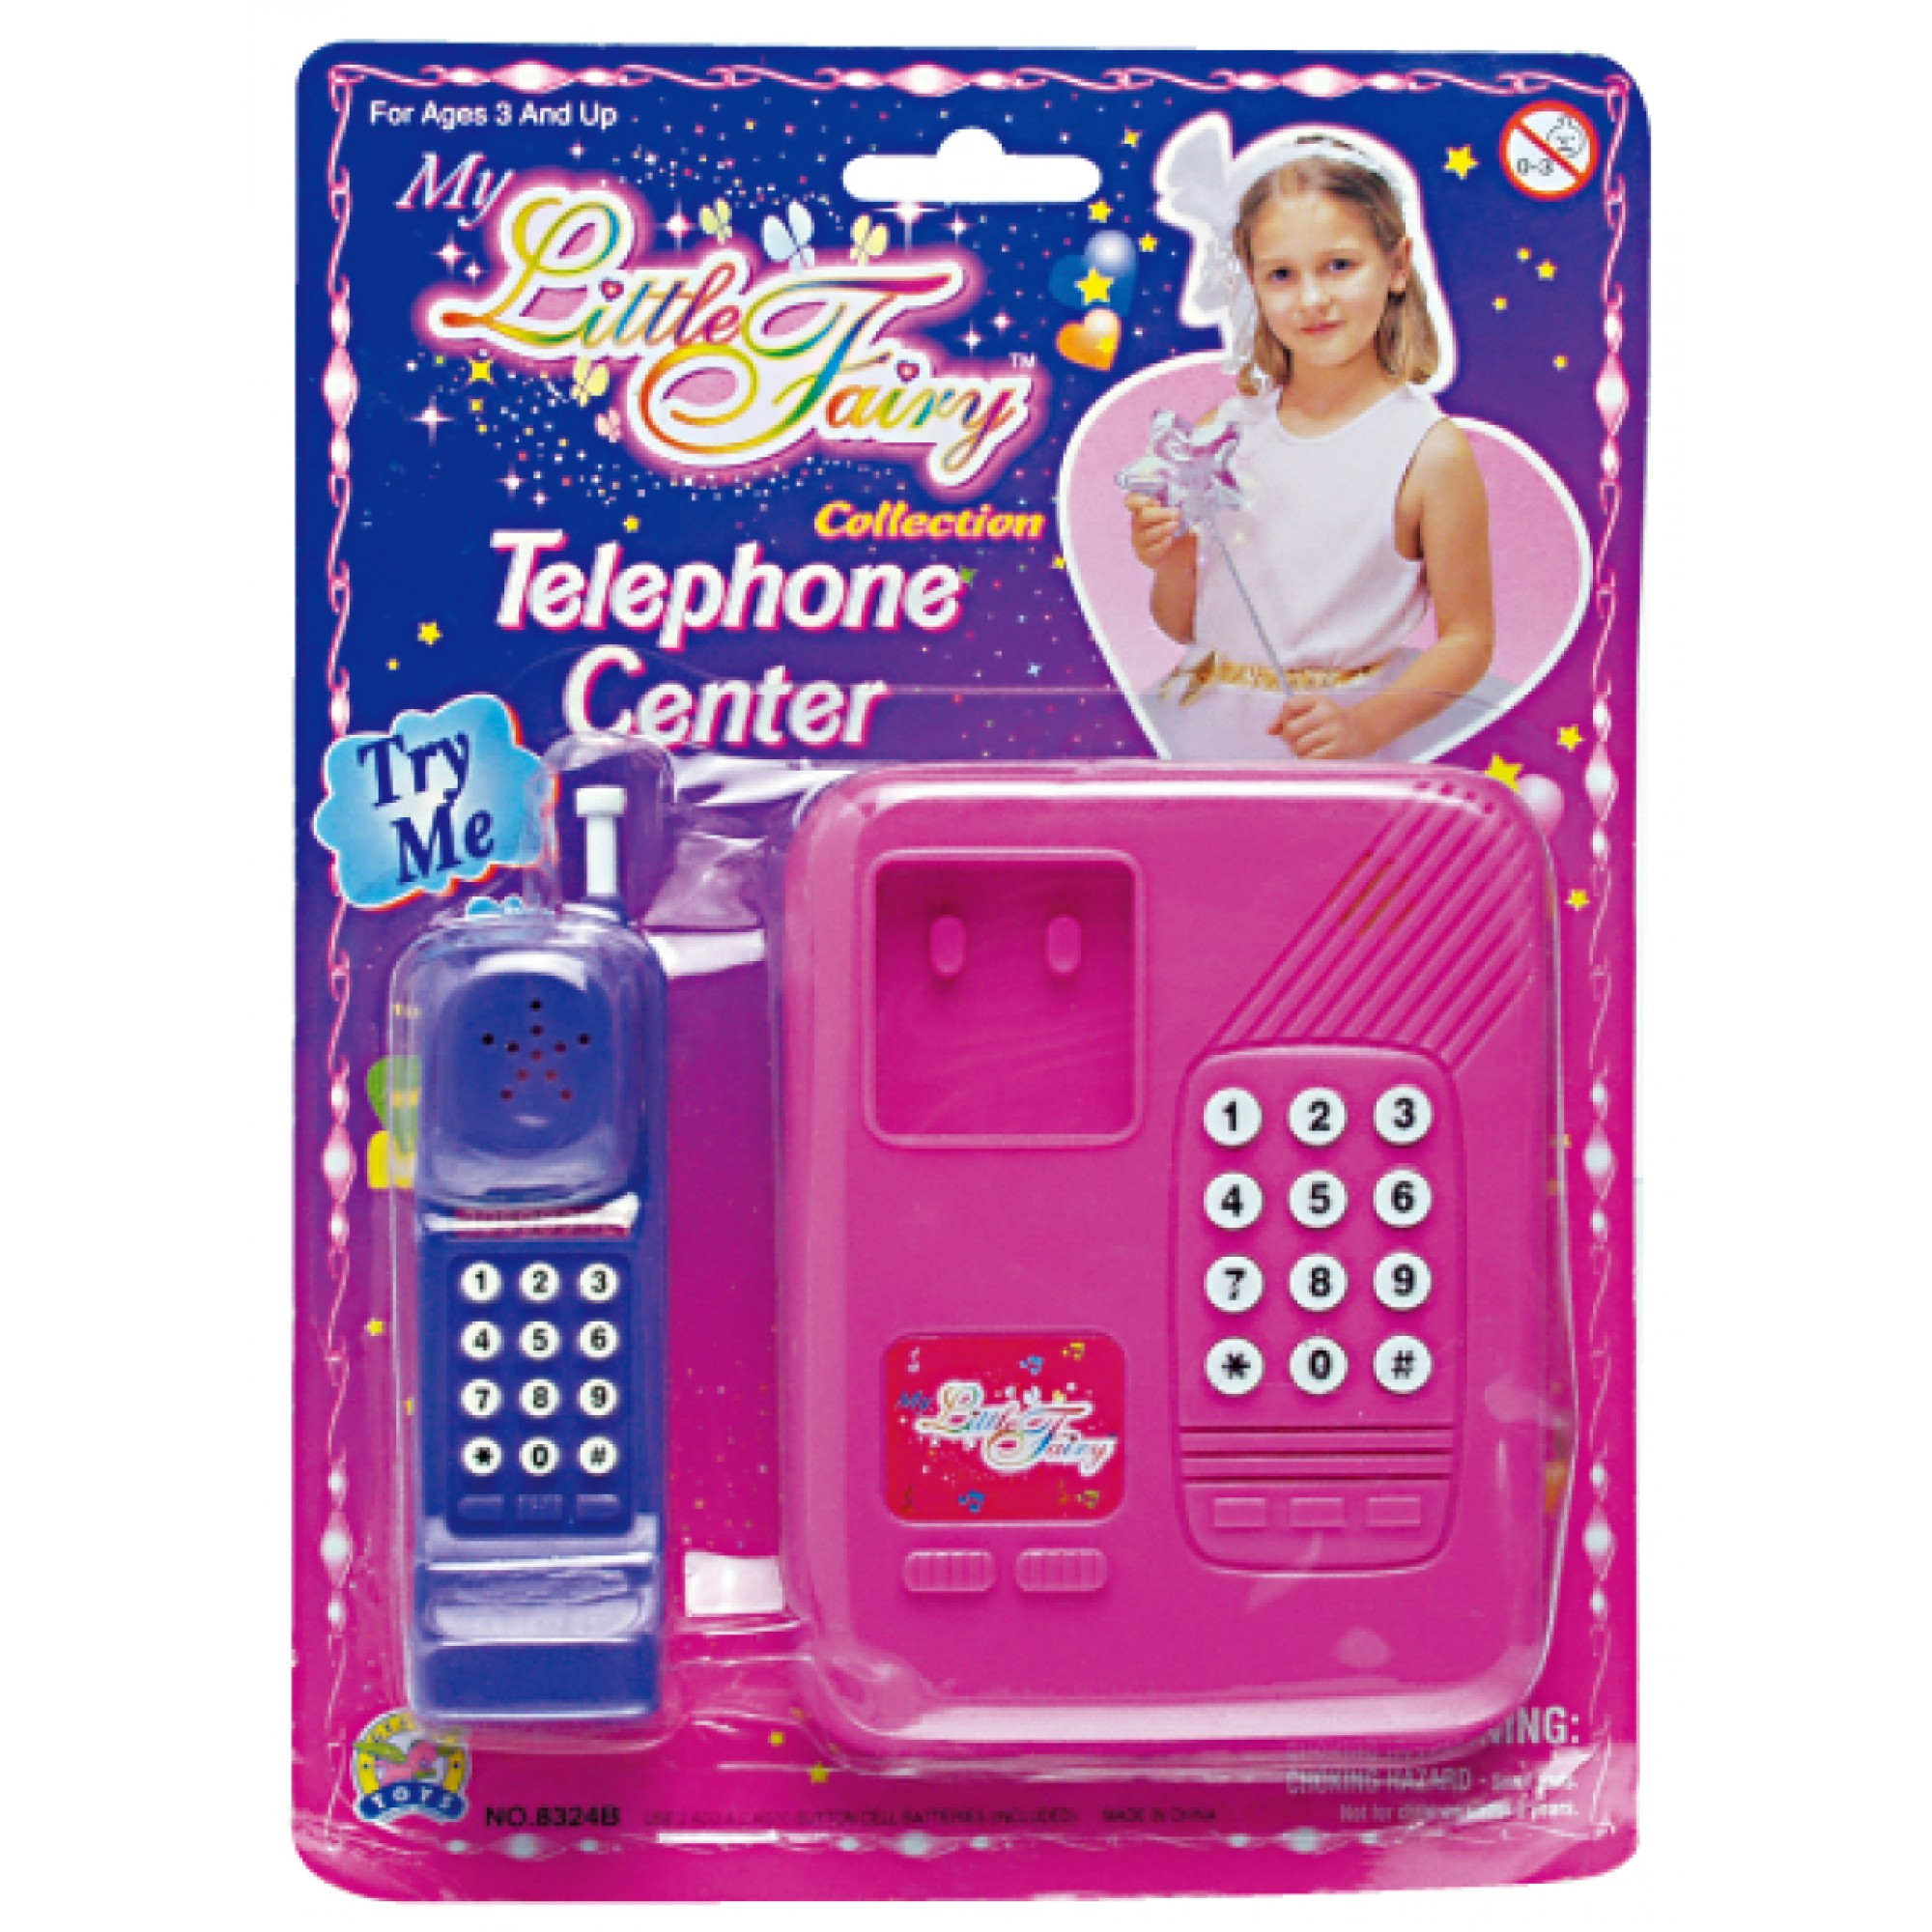 My Fairy Telephone Set